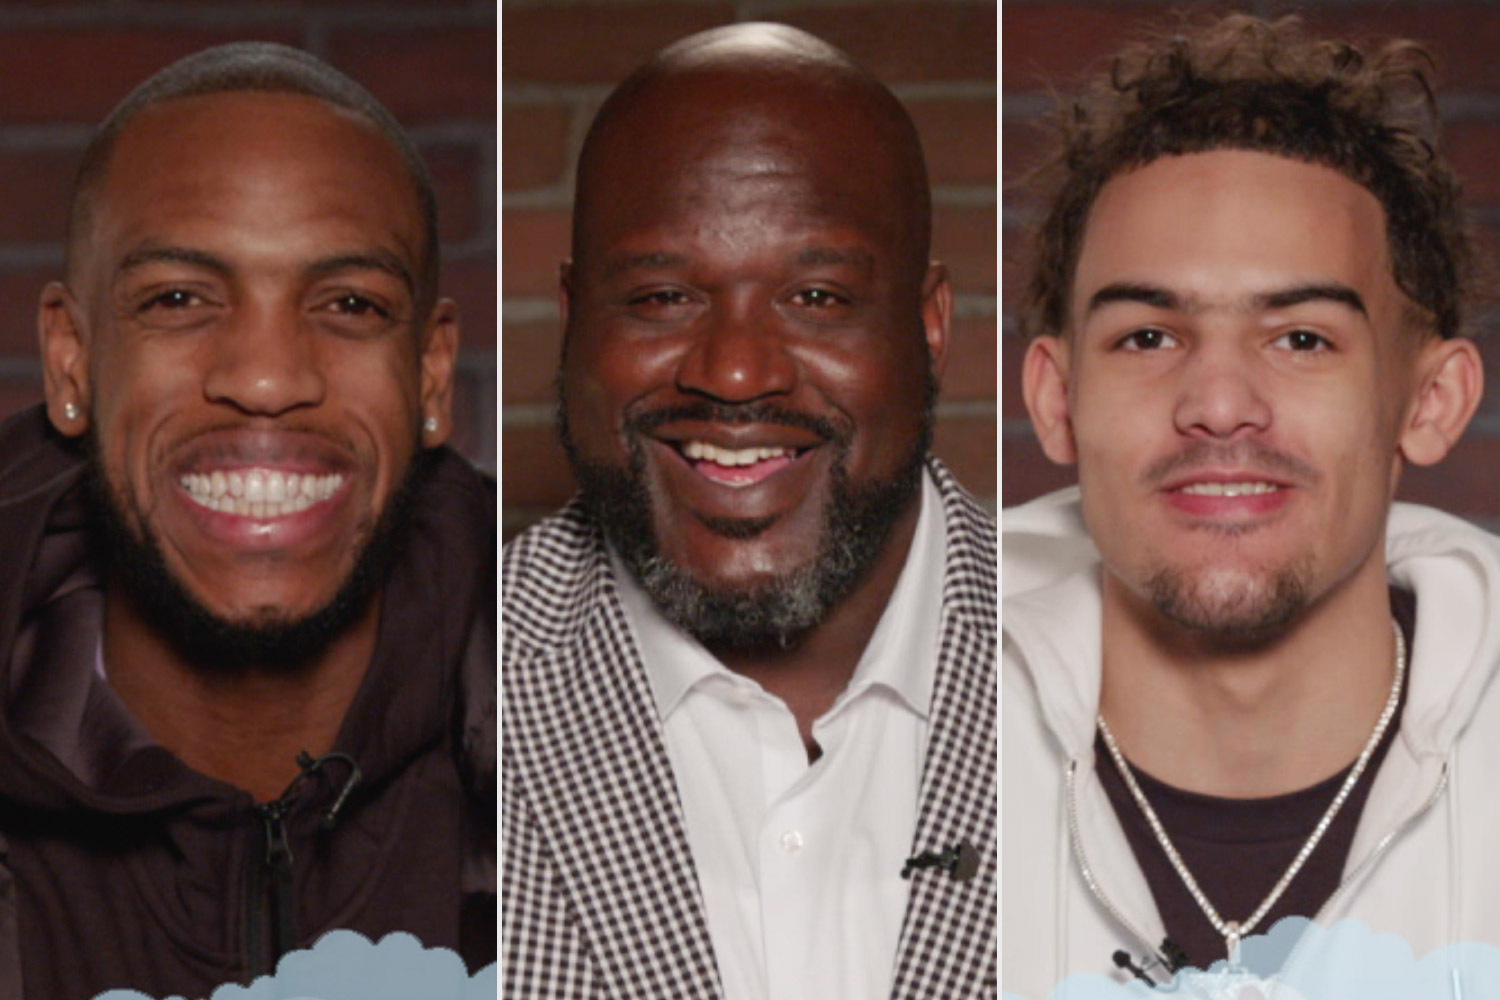 Shaquille O'Neal, Khris Middleton and Trae Young - Mean Tweets - Jimmy Kimmel Live https://app.asana.com/0/1135954362417873/1200566915259705/f Credit: ABC